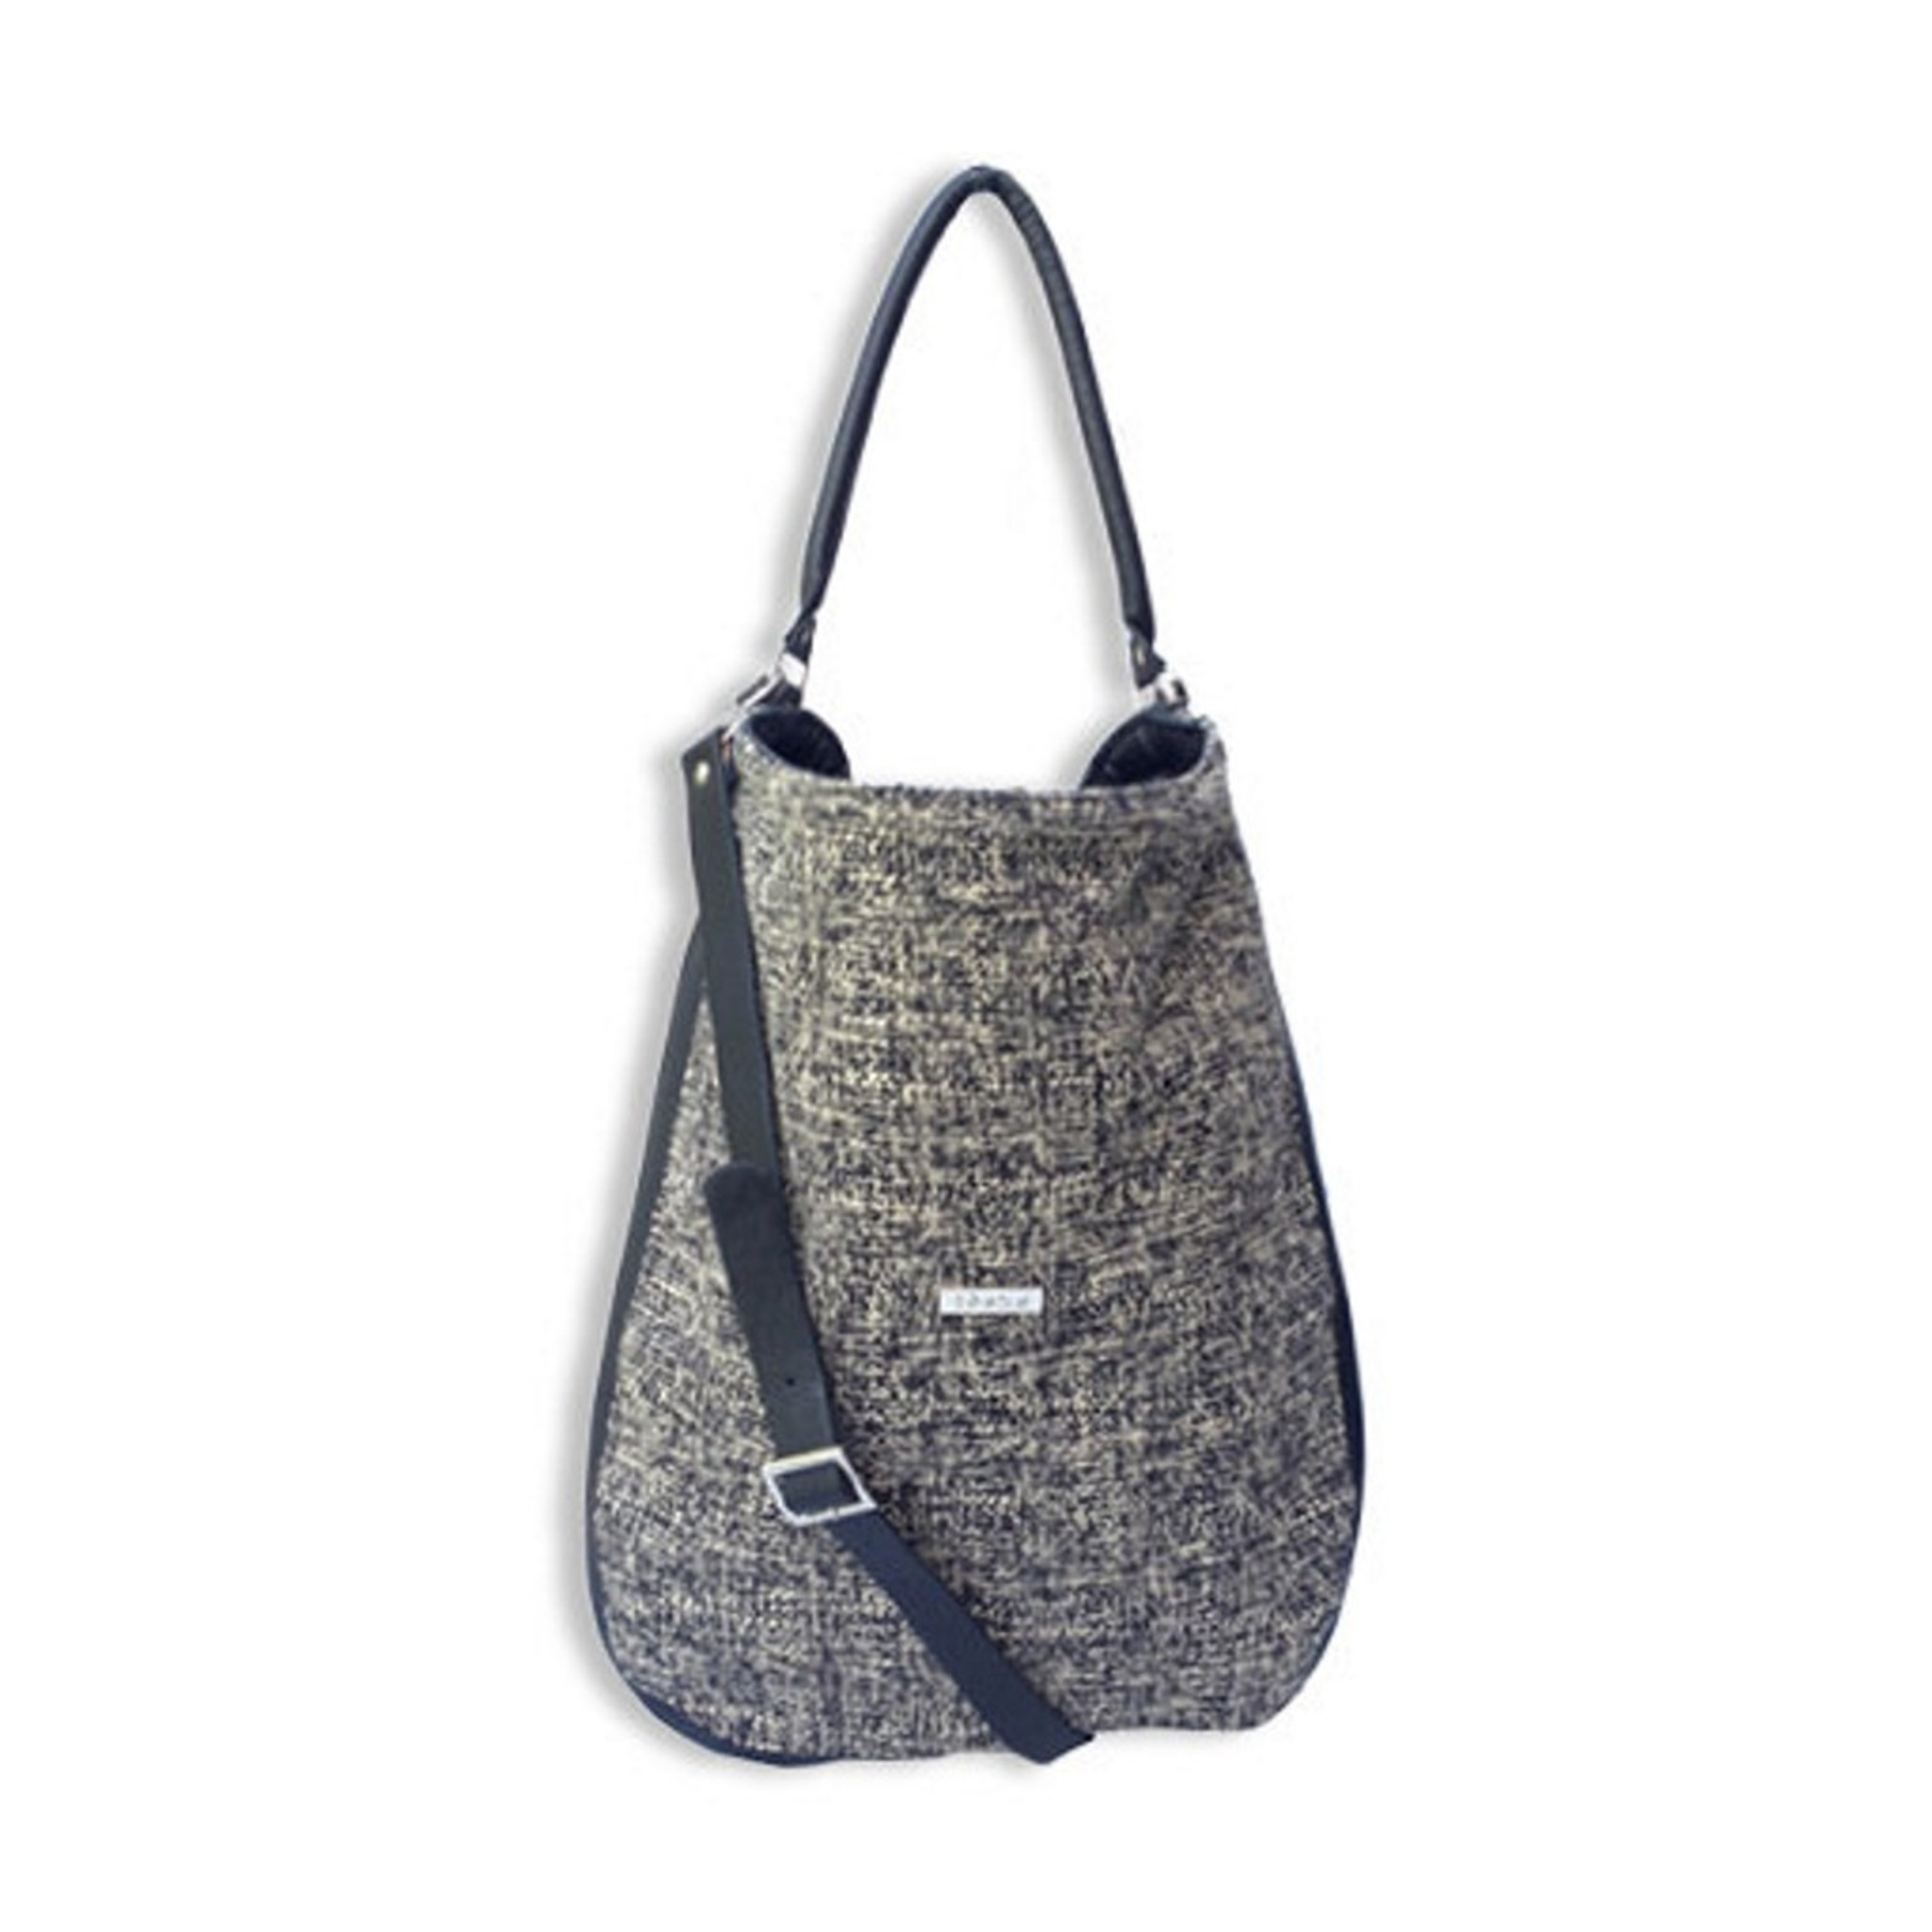 Taska Leoni Hobo Bag | Canada The Store